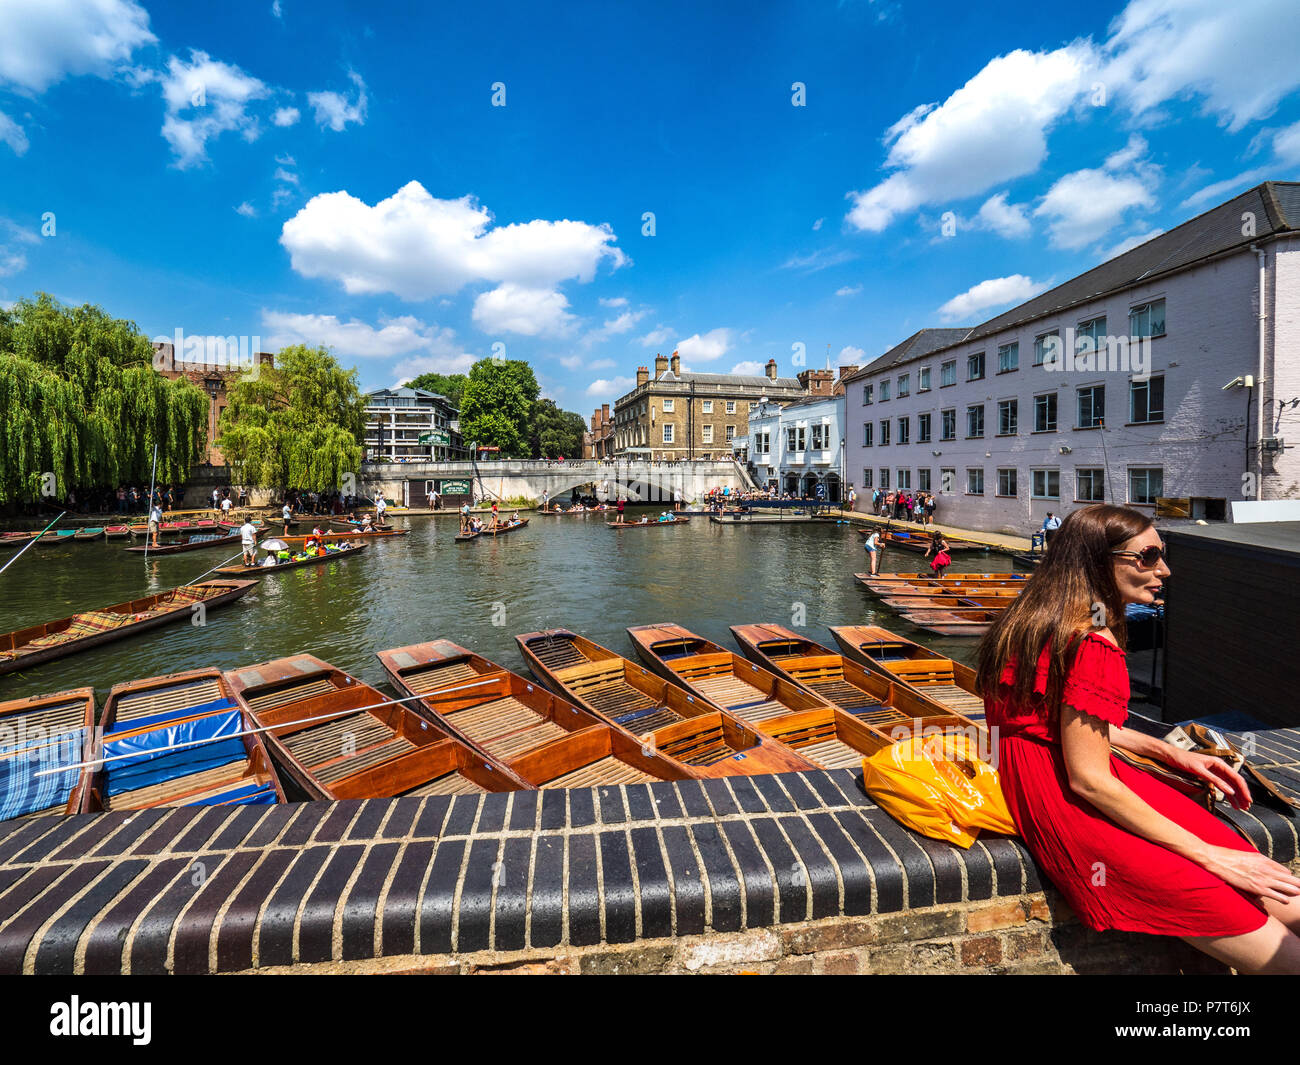 Cambridge Tourism - Punts waiting for hire on a warm summer day - Stock Image